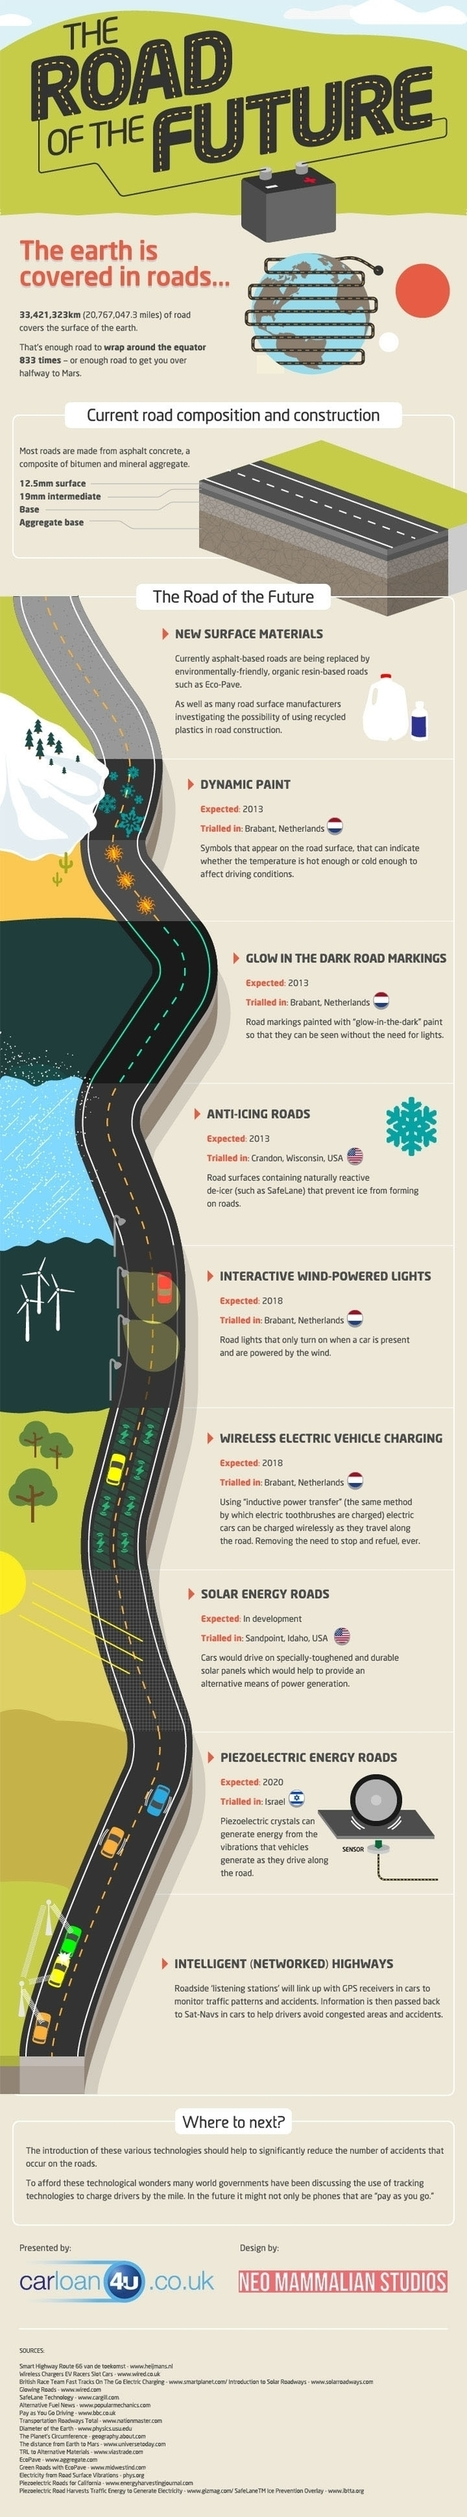 The Road to The Future [Infographic] - Business 2 Community | Top 5 Infographics | Scoop.it